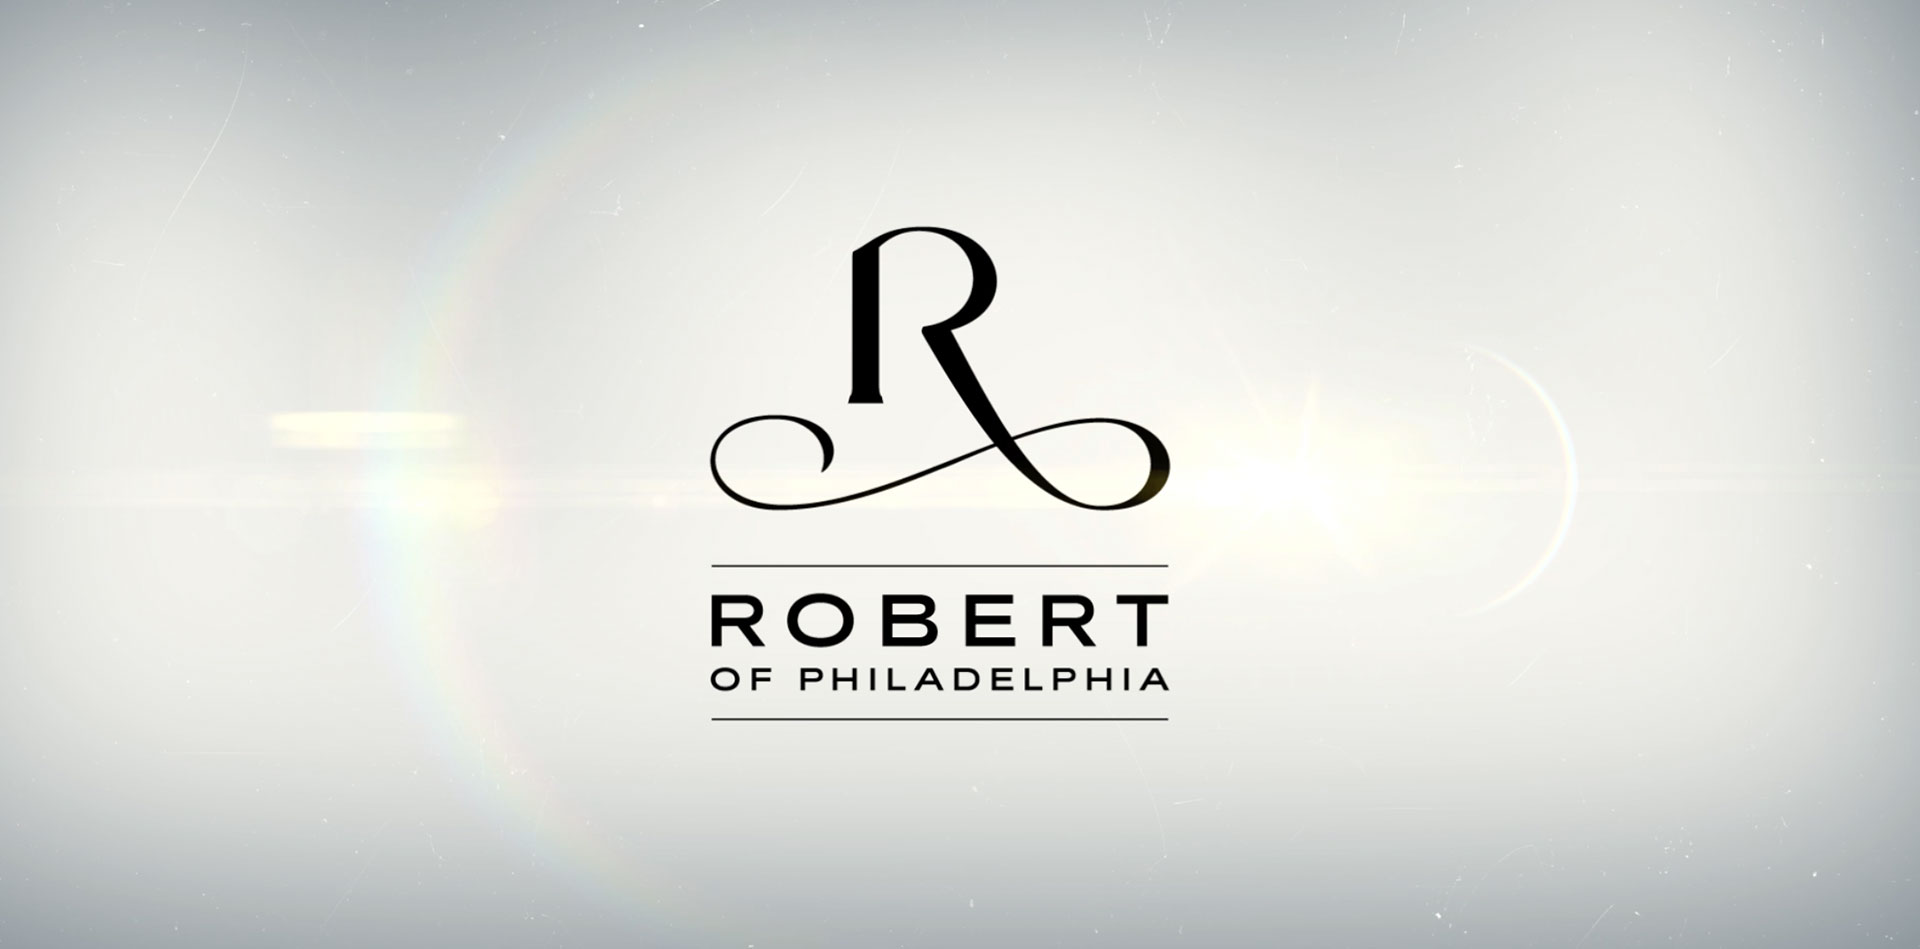 Robert of Philadelphia Salons professional hair salons in Naples & Bonita Springs Florida that provide the highest quality professional hair care services, treatments and products.